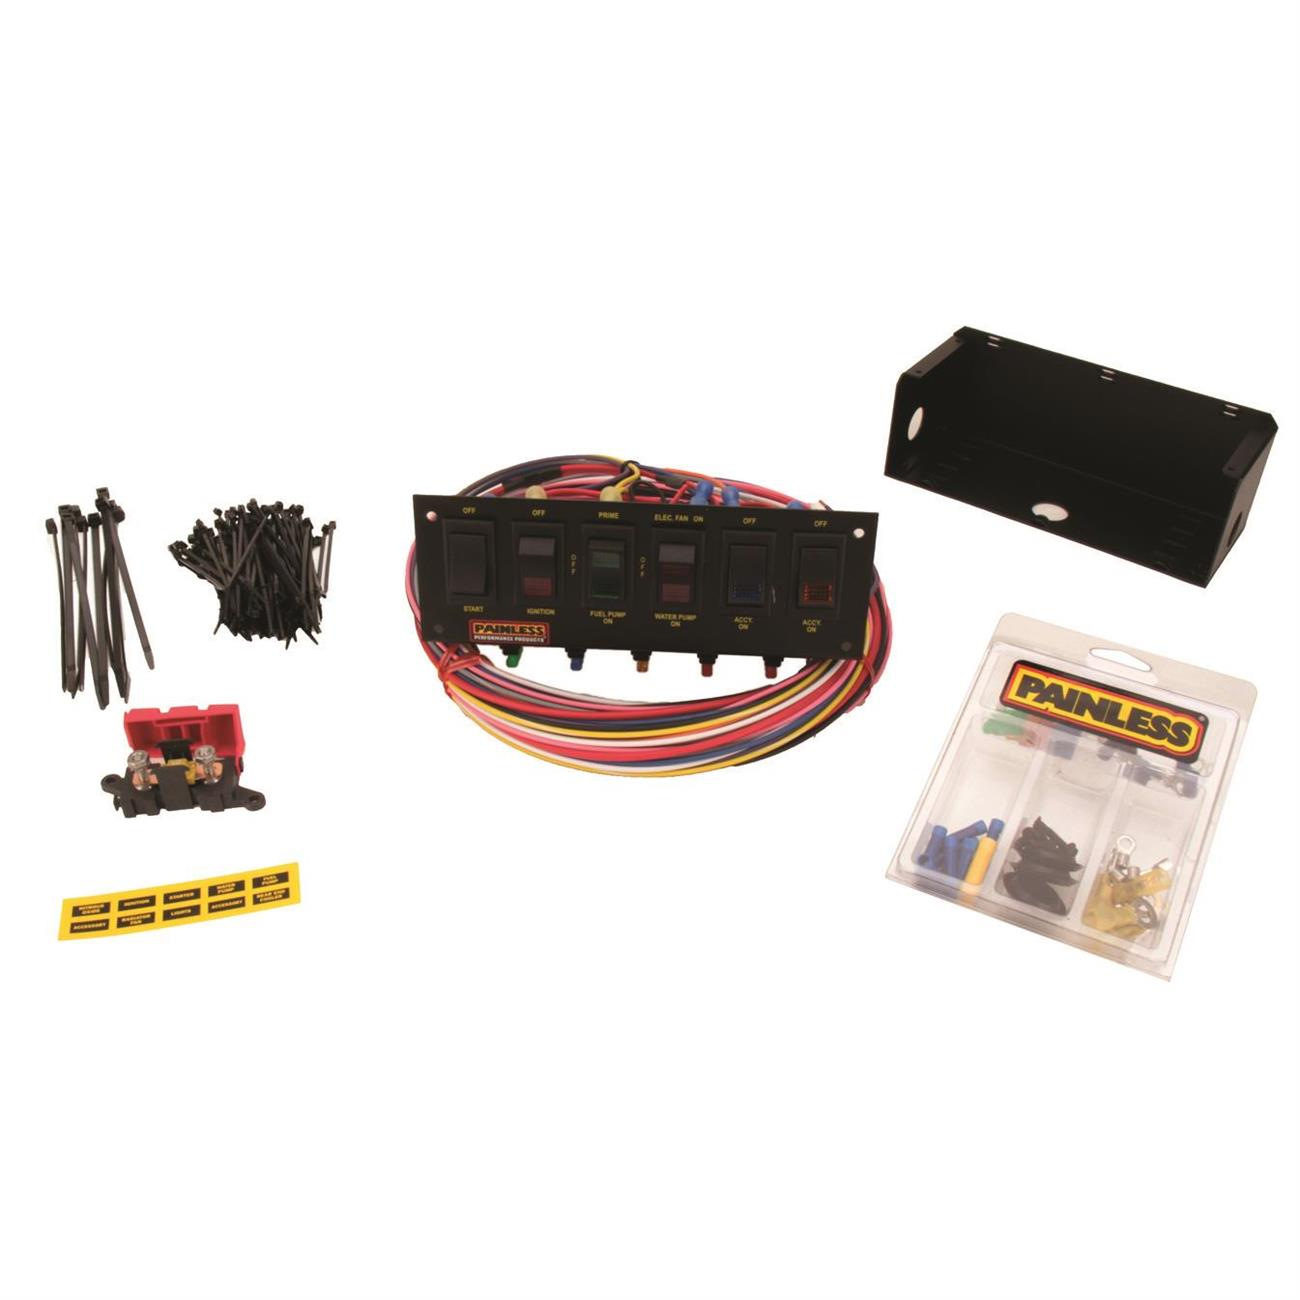 race car wiring harness painless 50003 trusted wiring diagram painless auto wiring diagram painless wiring 50003 21 circuit pro street chassis wiring harness 12 circuit painless wire harness race car wiring harness painless 50003